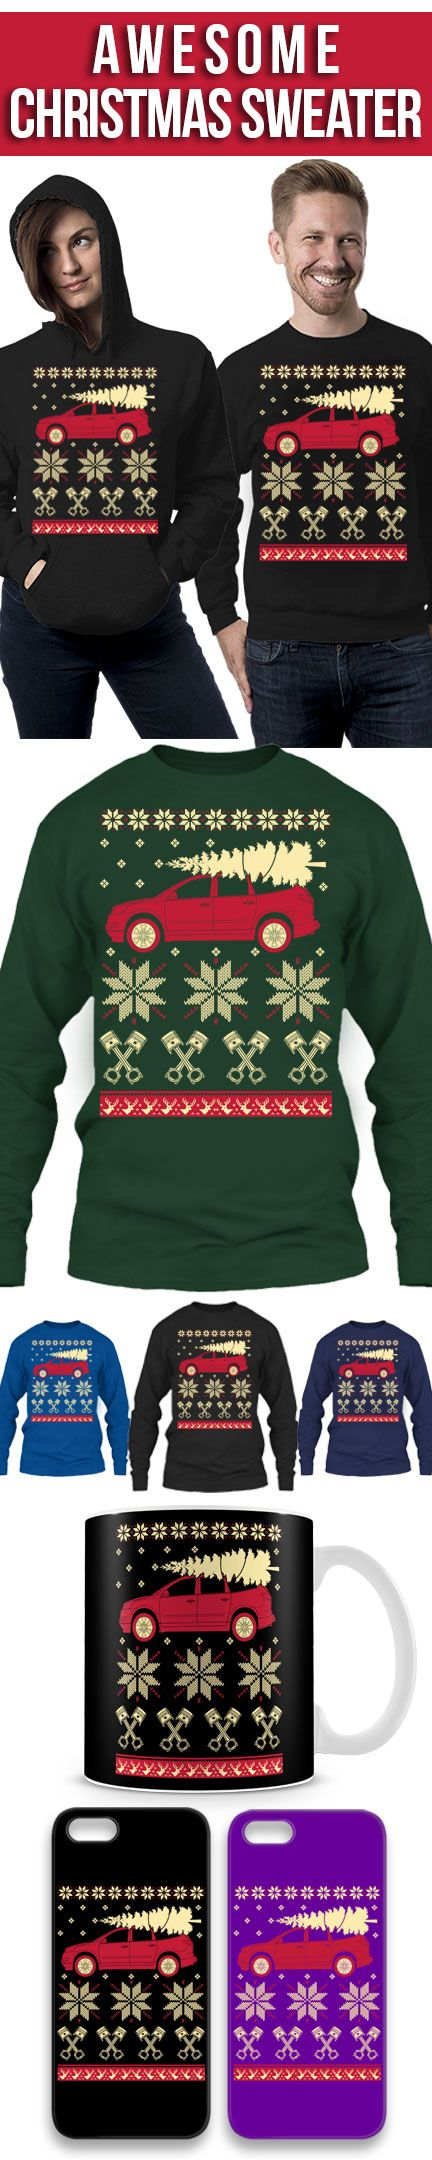 Chevrolet Traverse Ugly Christmas Sweater! Click The Image To Buy It Now or Tag Someone You Want To Buy This For. #ChevroletTraverse